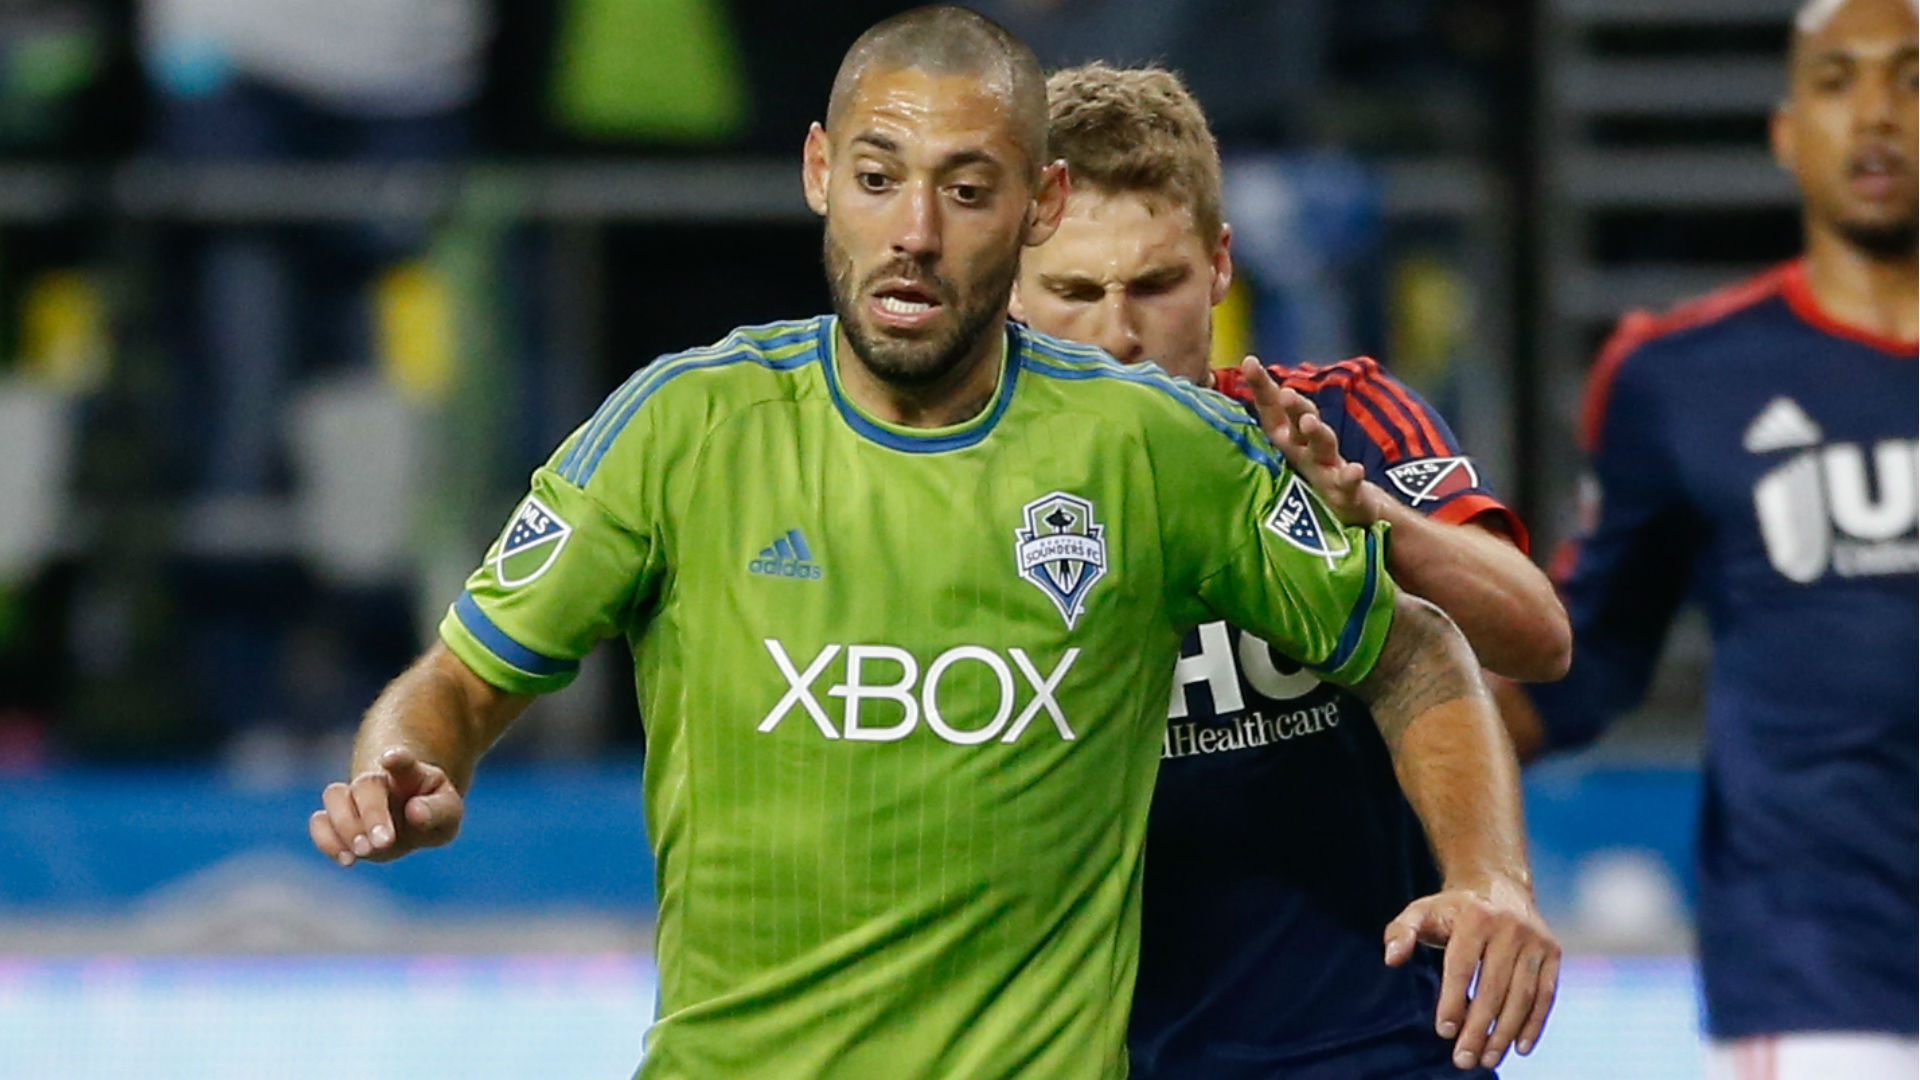 MLS All-Star Game 2015 features league's best players vs. Tottenham Hotspur